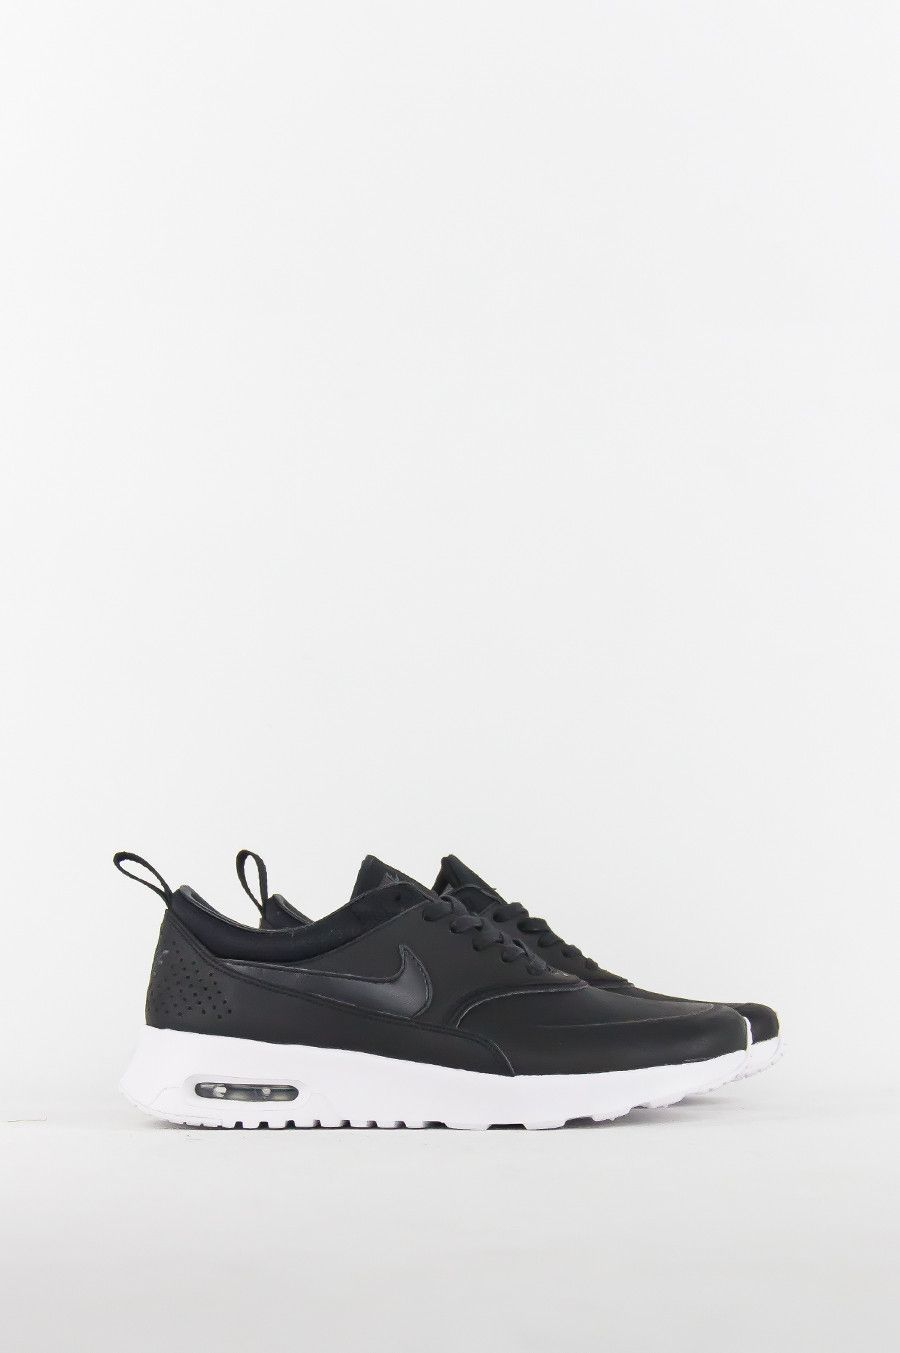 huge discount 18b94 779a3 NIKE WOMENS AIR MAX THEA PRM BLACK ANTHRACITE WHITE